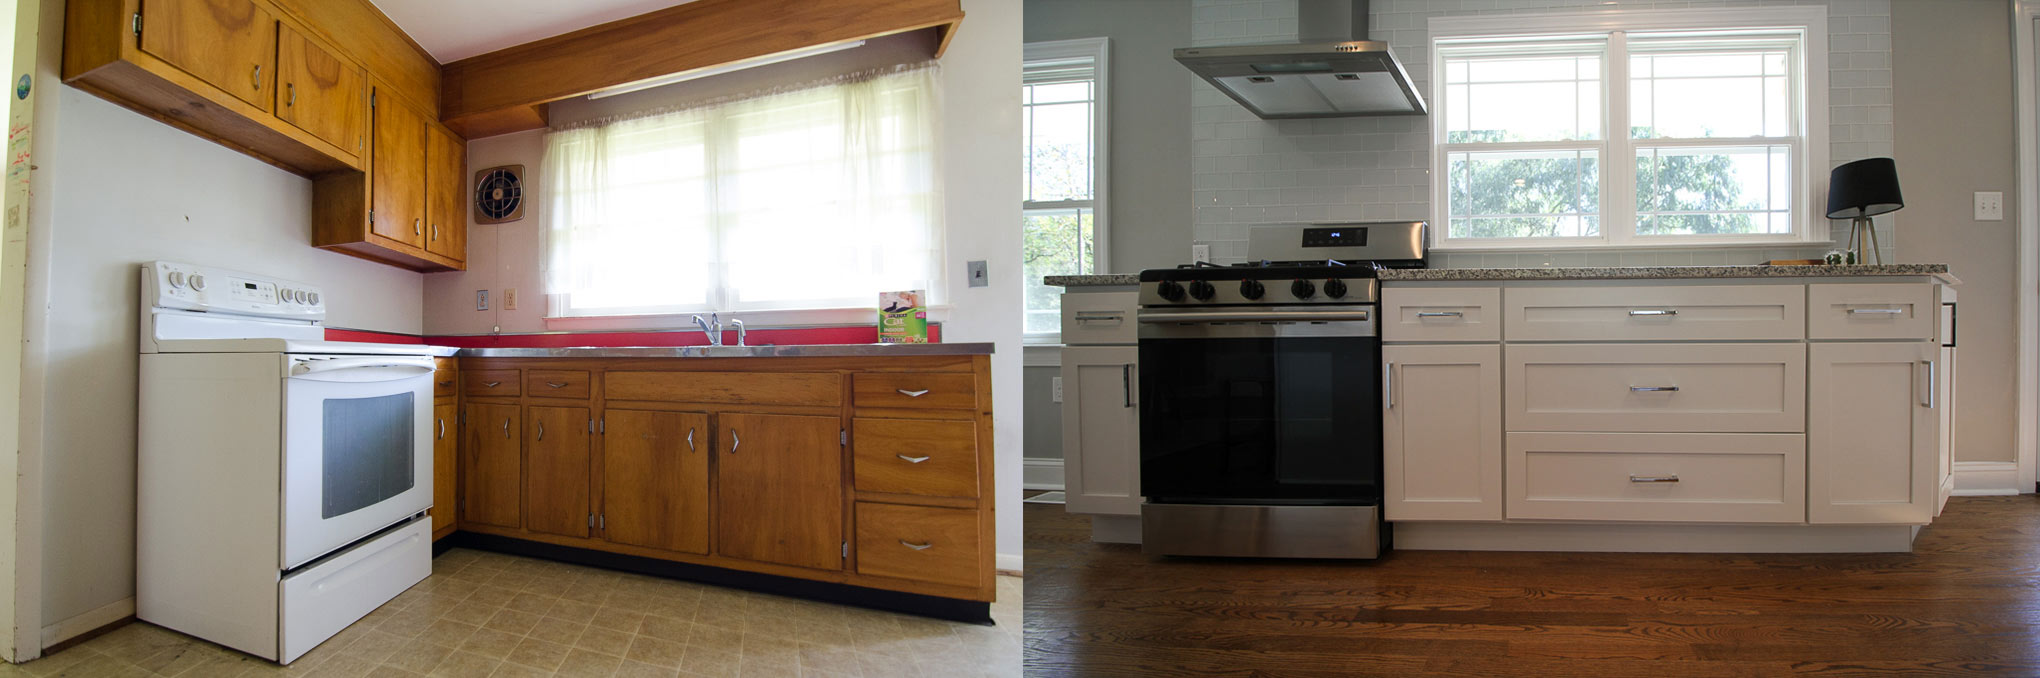 joppa road kitchen before and after cabinets